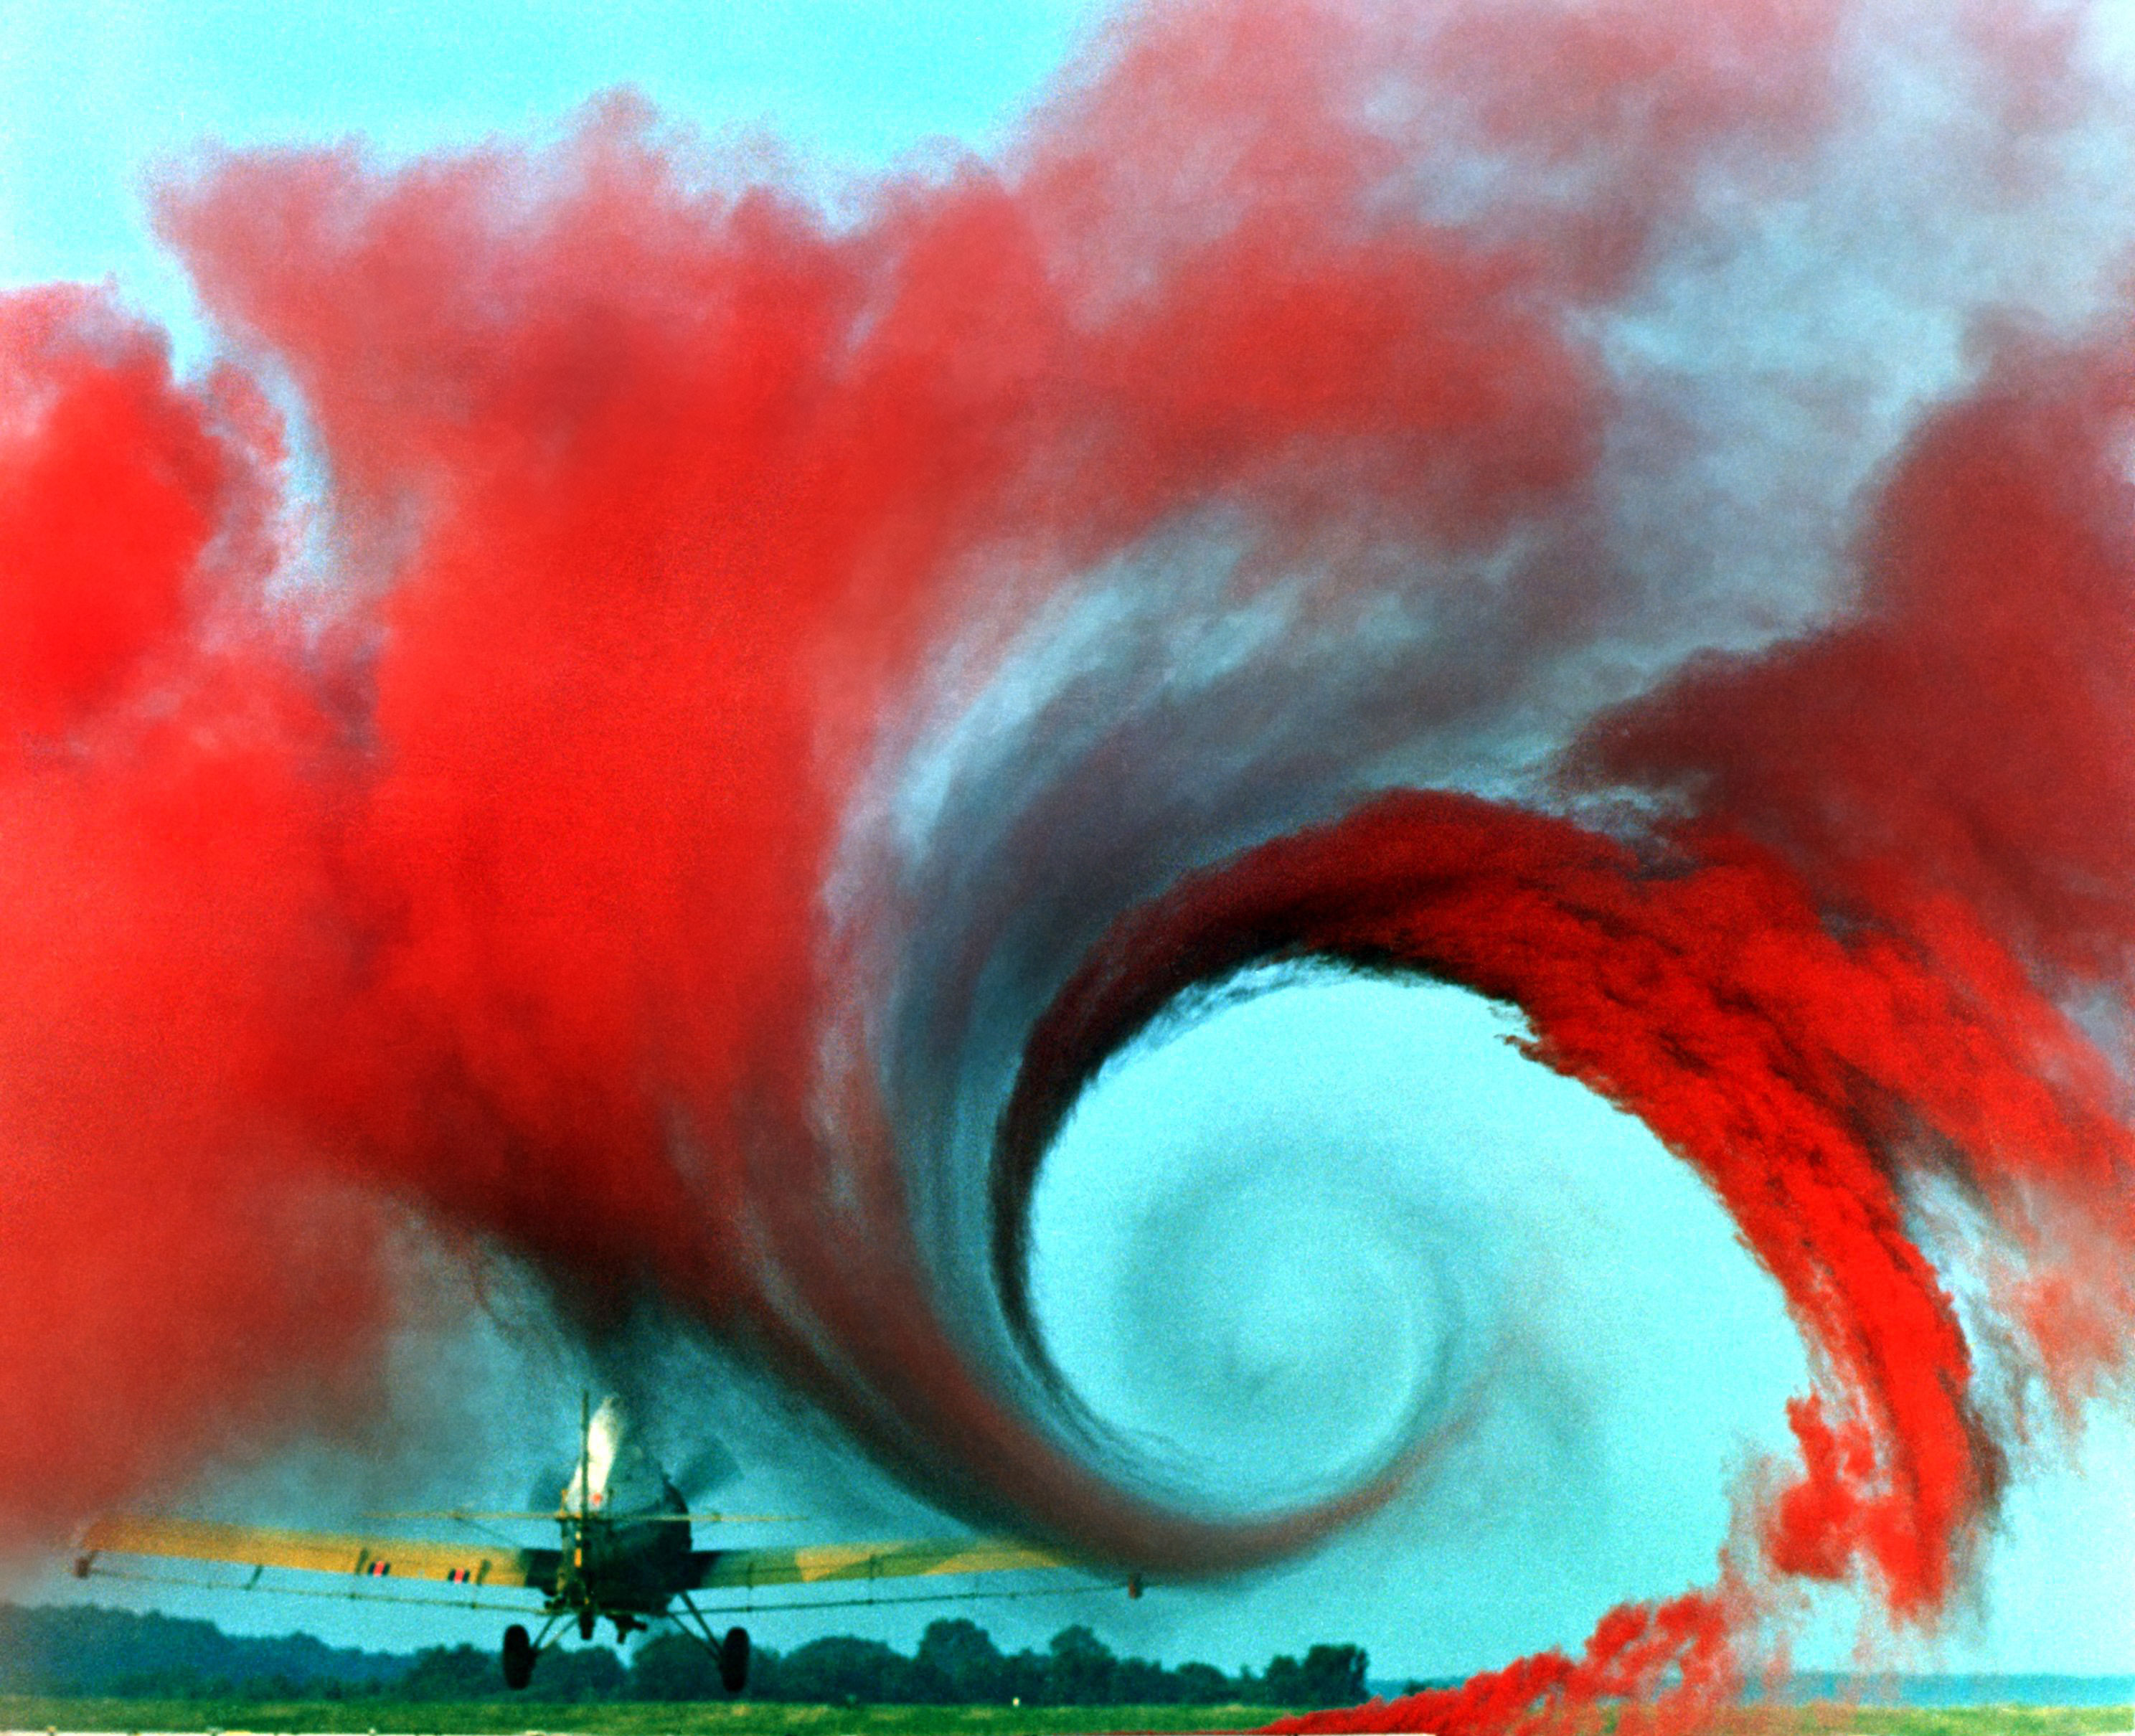 Red powder is used to trace the eddy created by an airplane wing